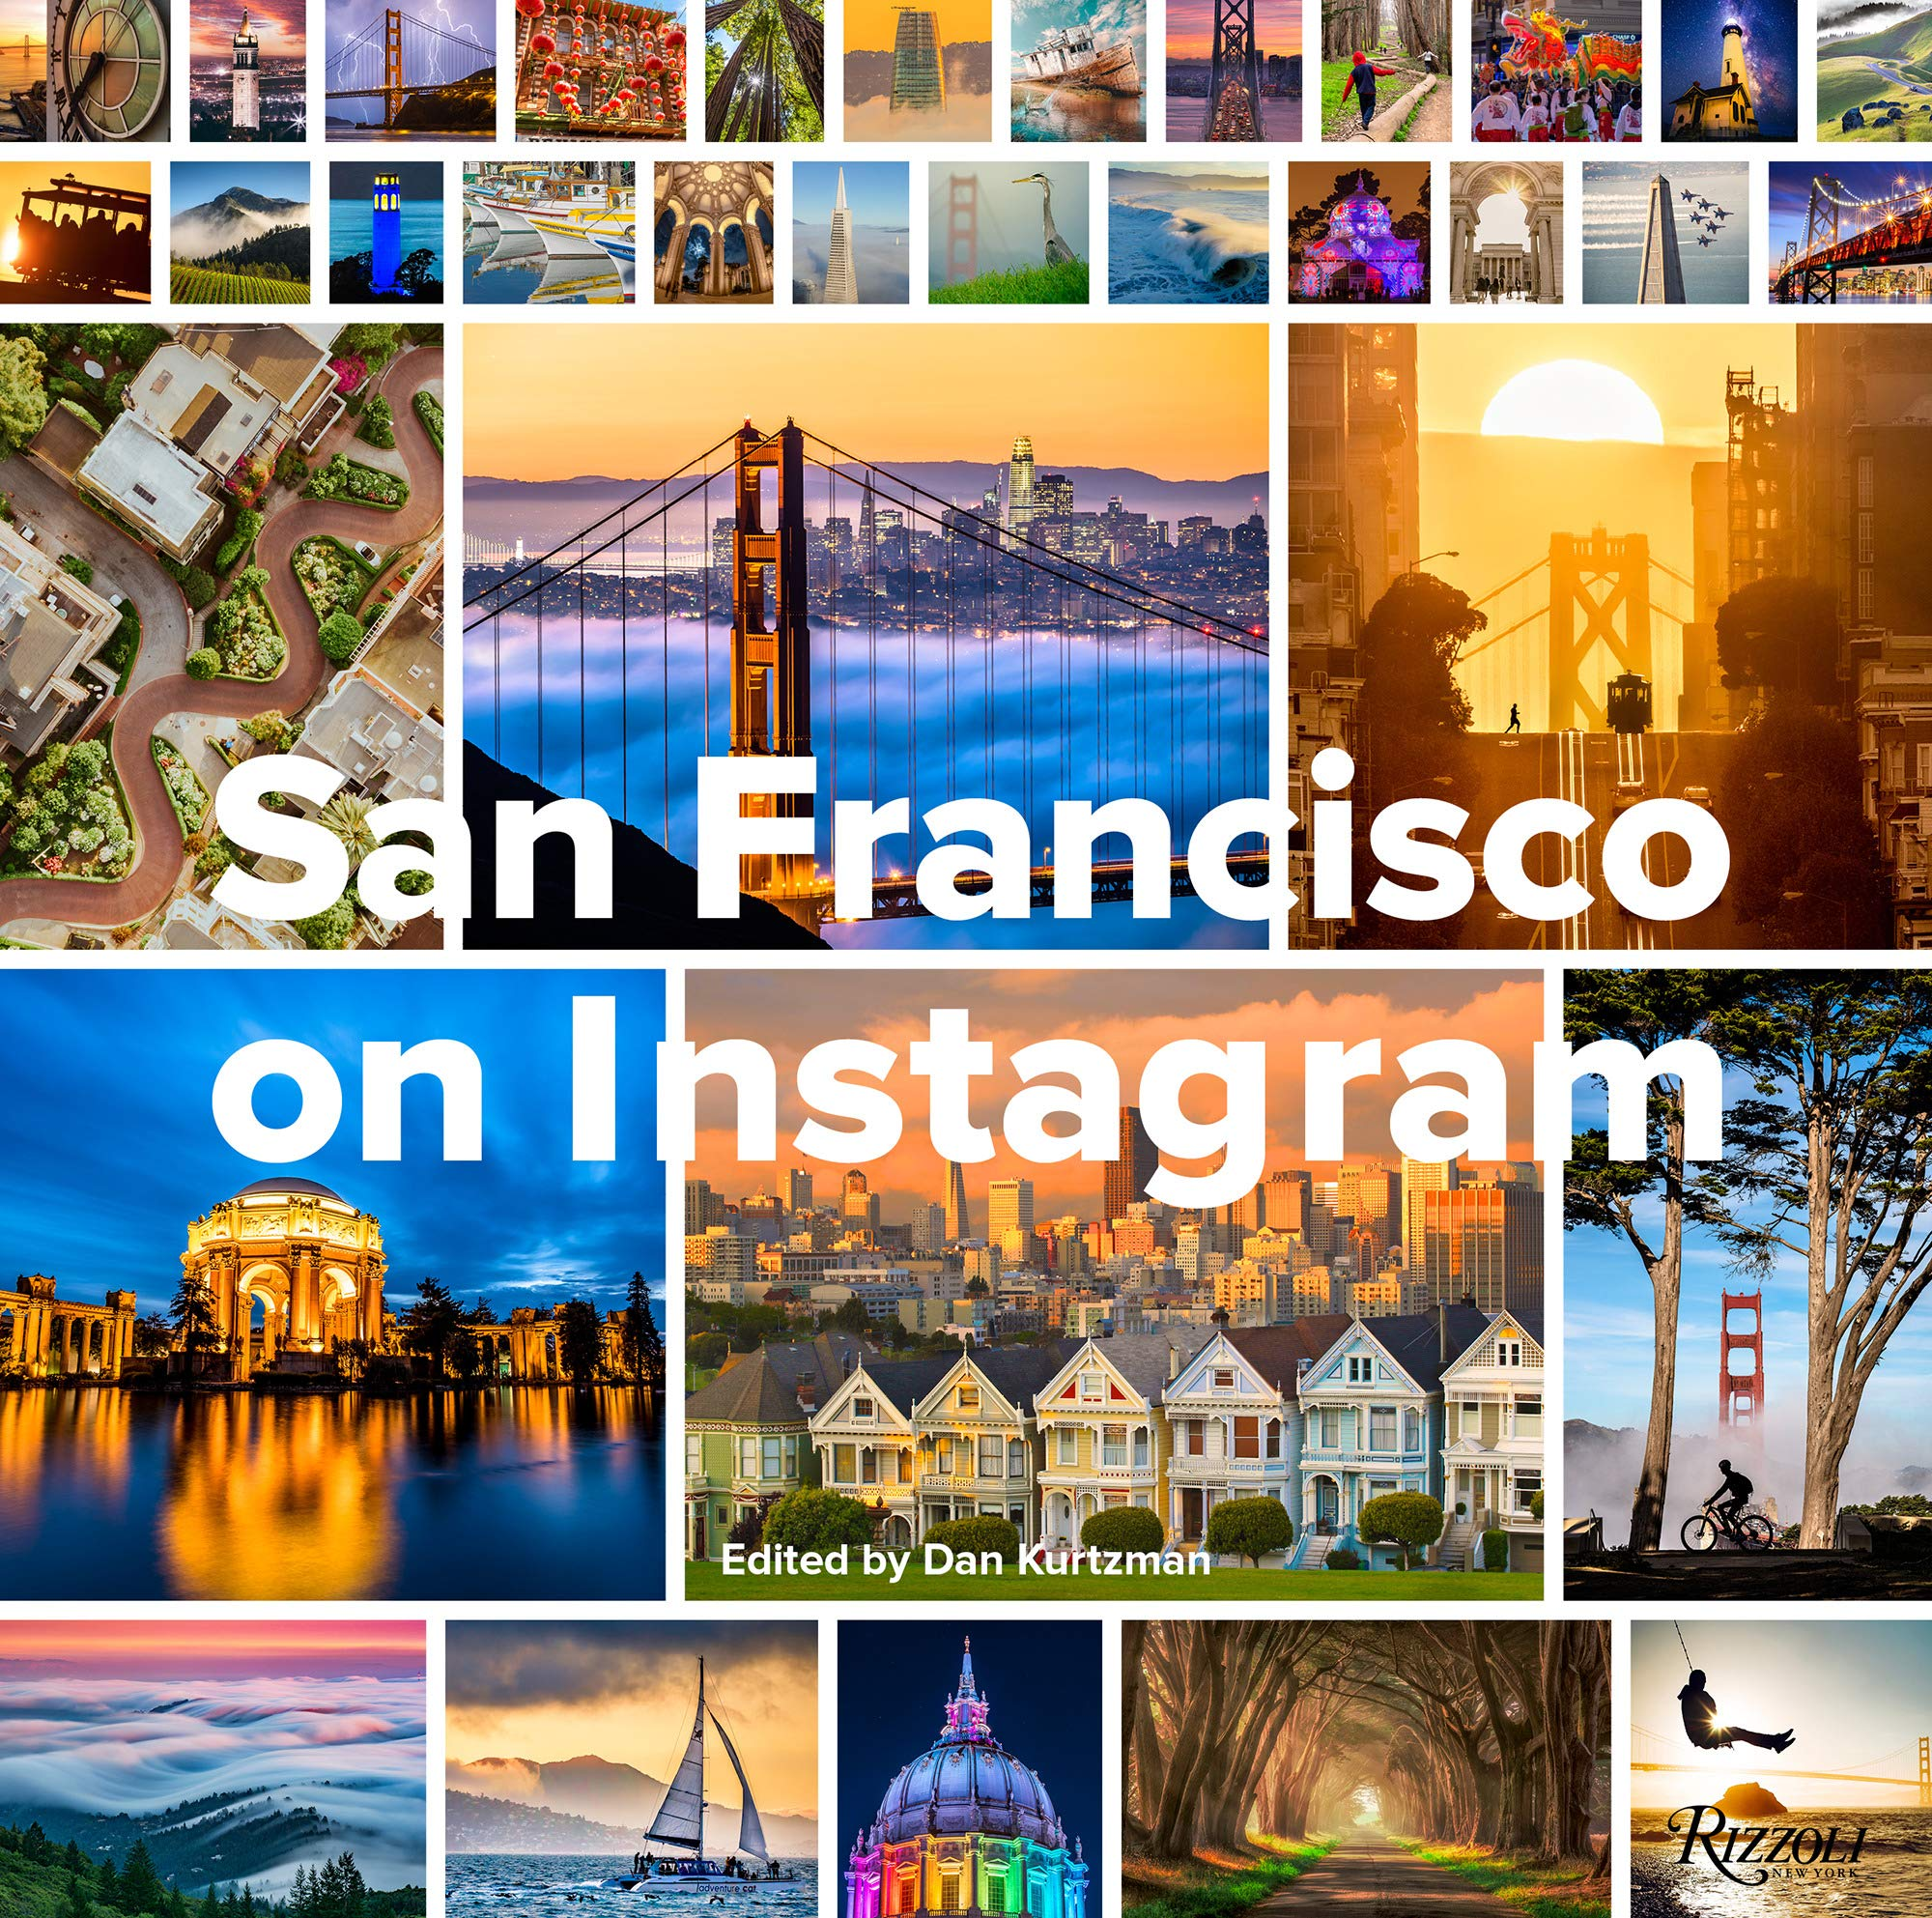 San Francisco on Instagram by Welcome Books